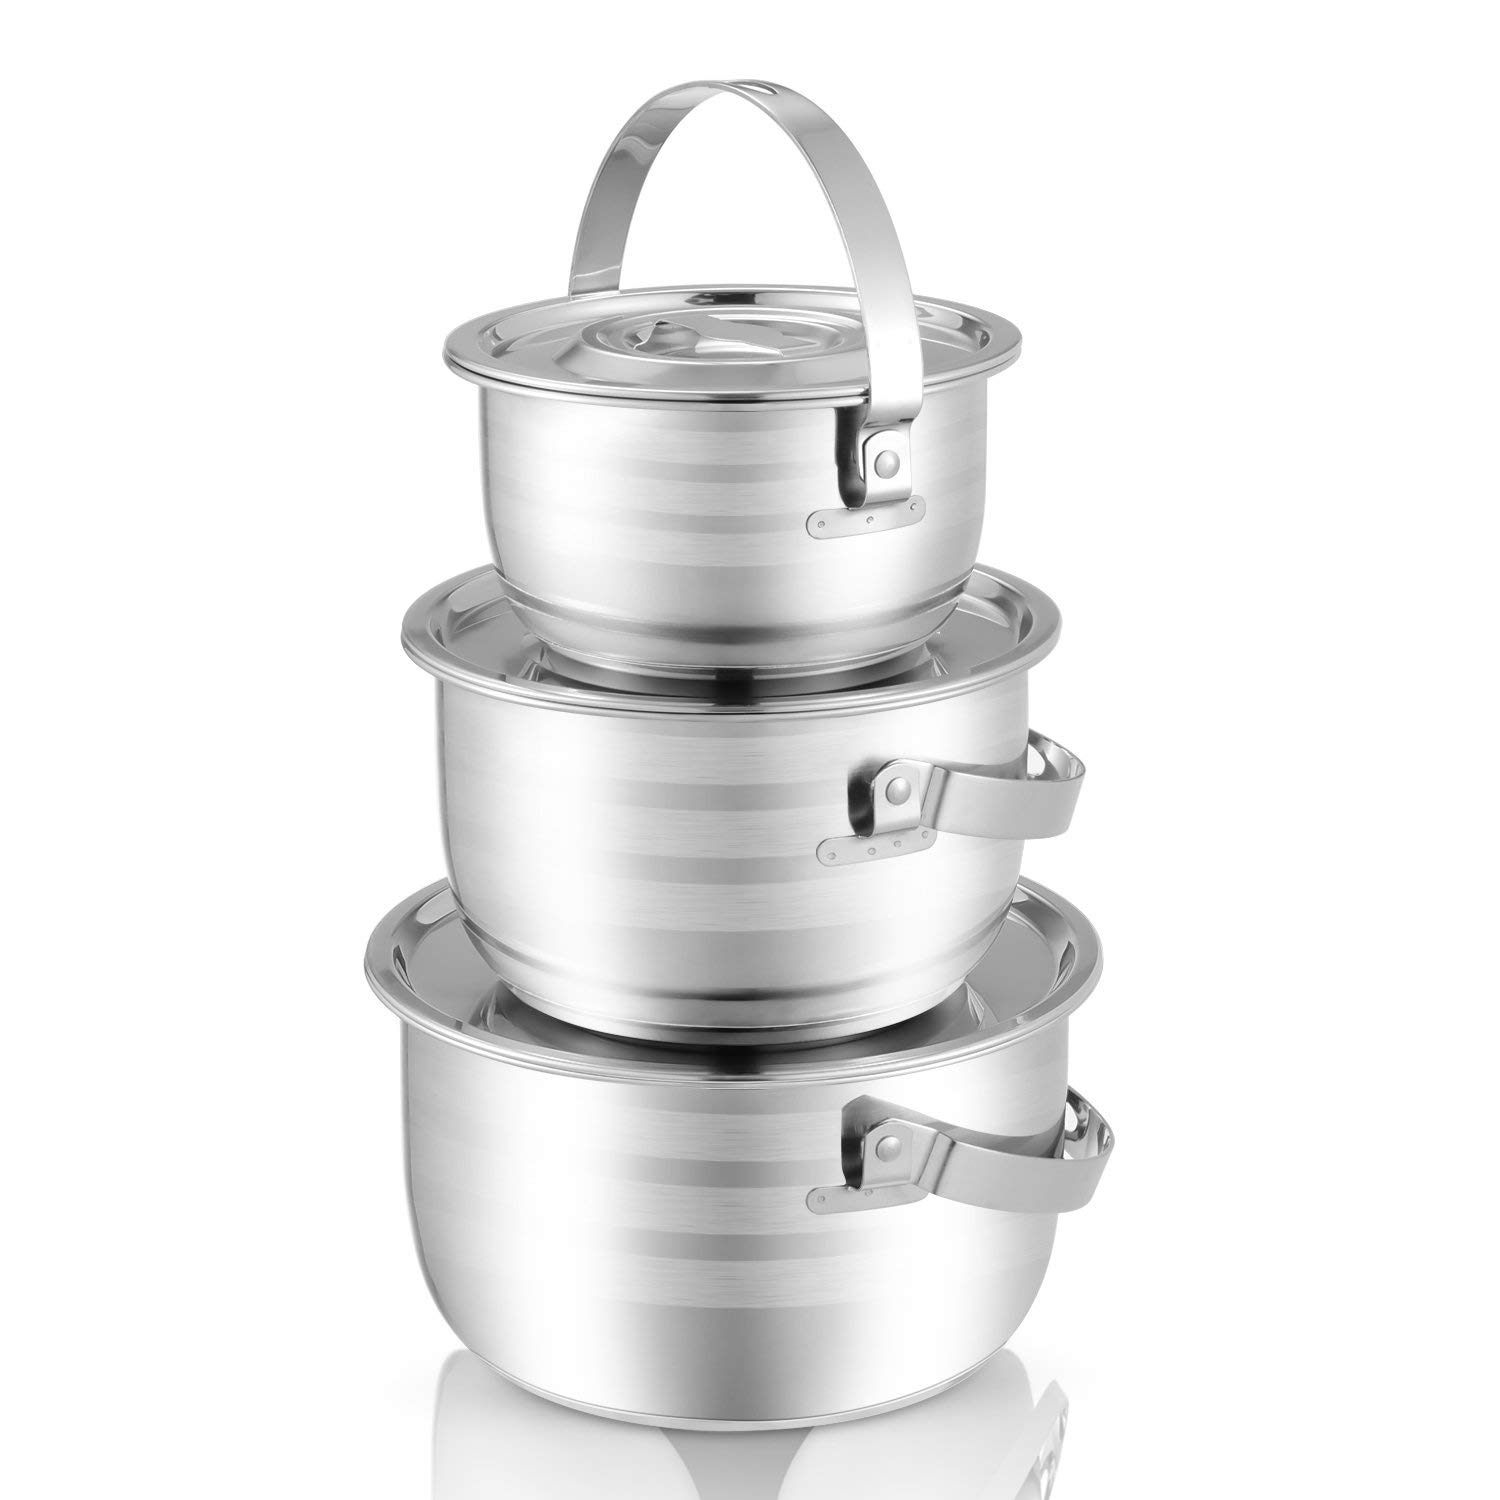 Kinden Stainless Steel Mixing Bowls with Handle and Lids